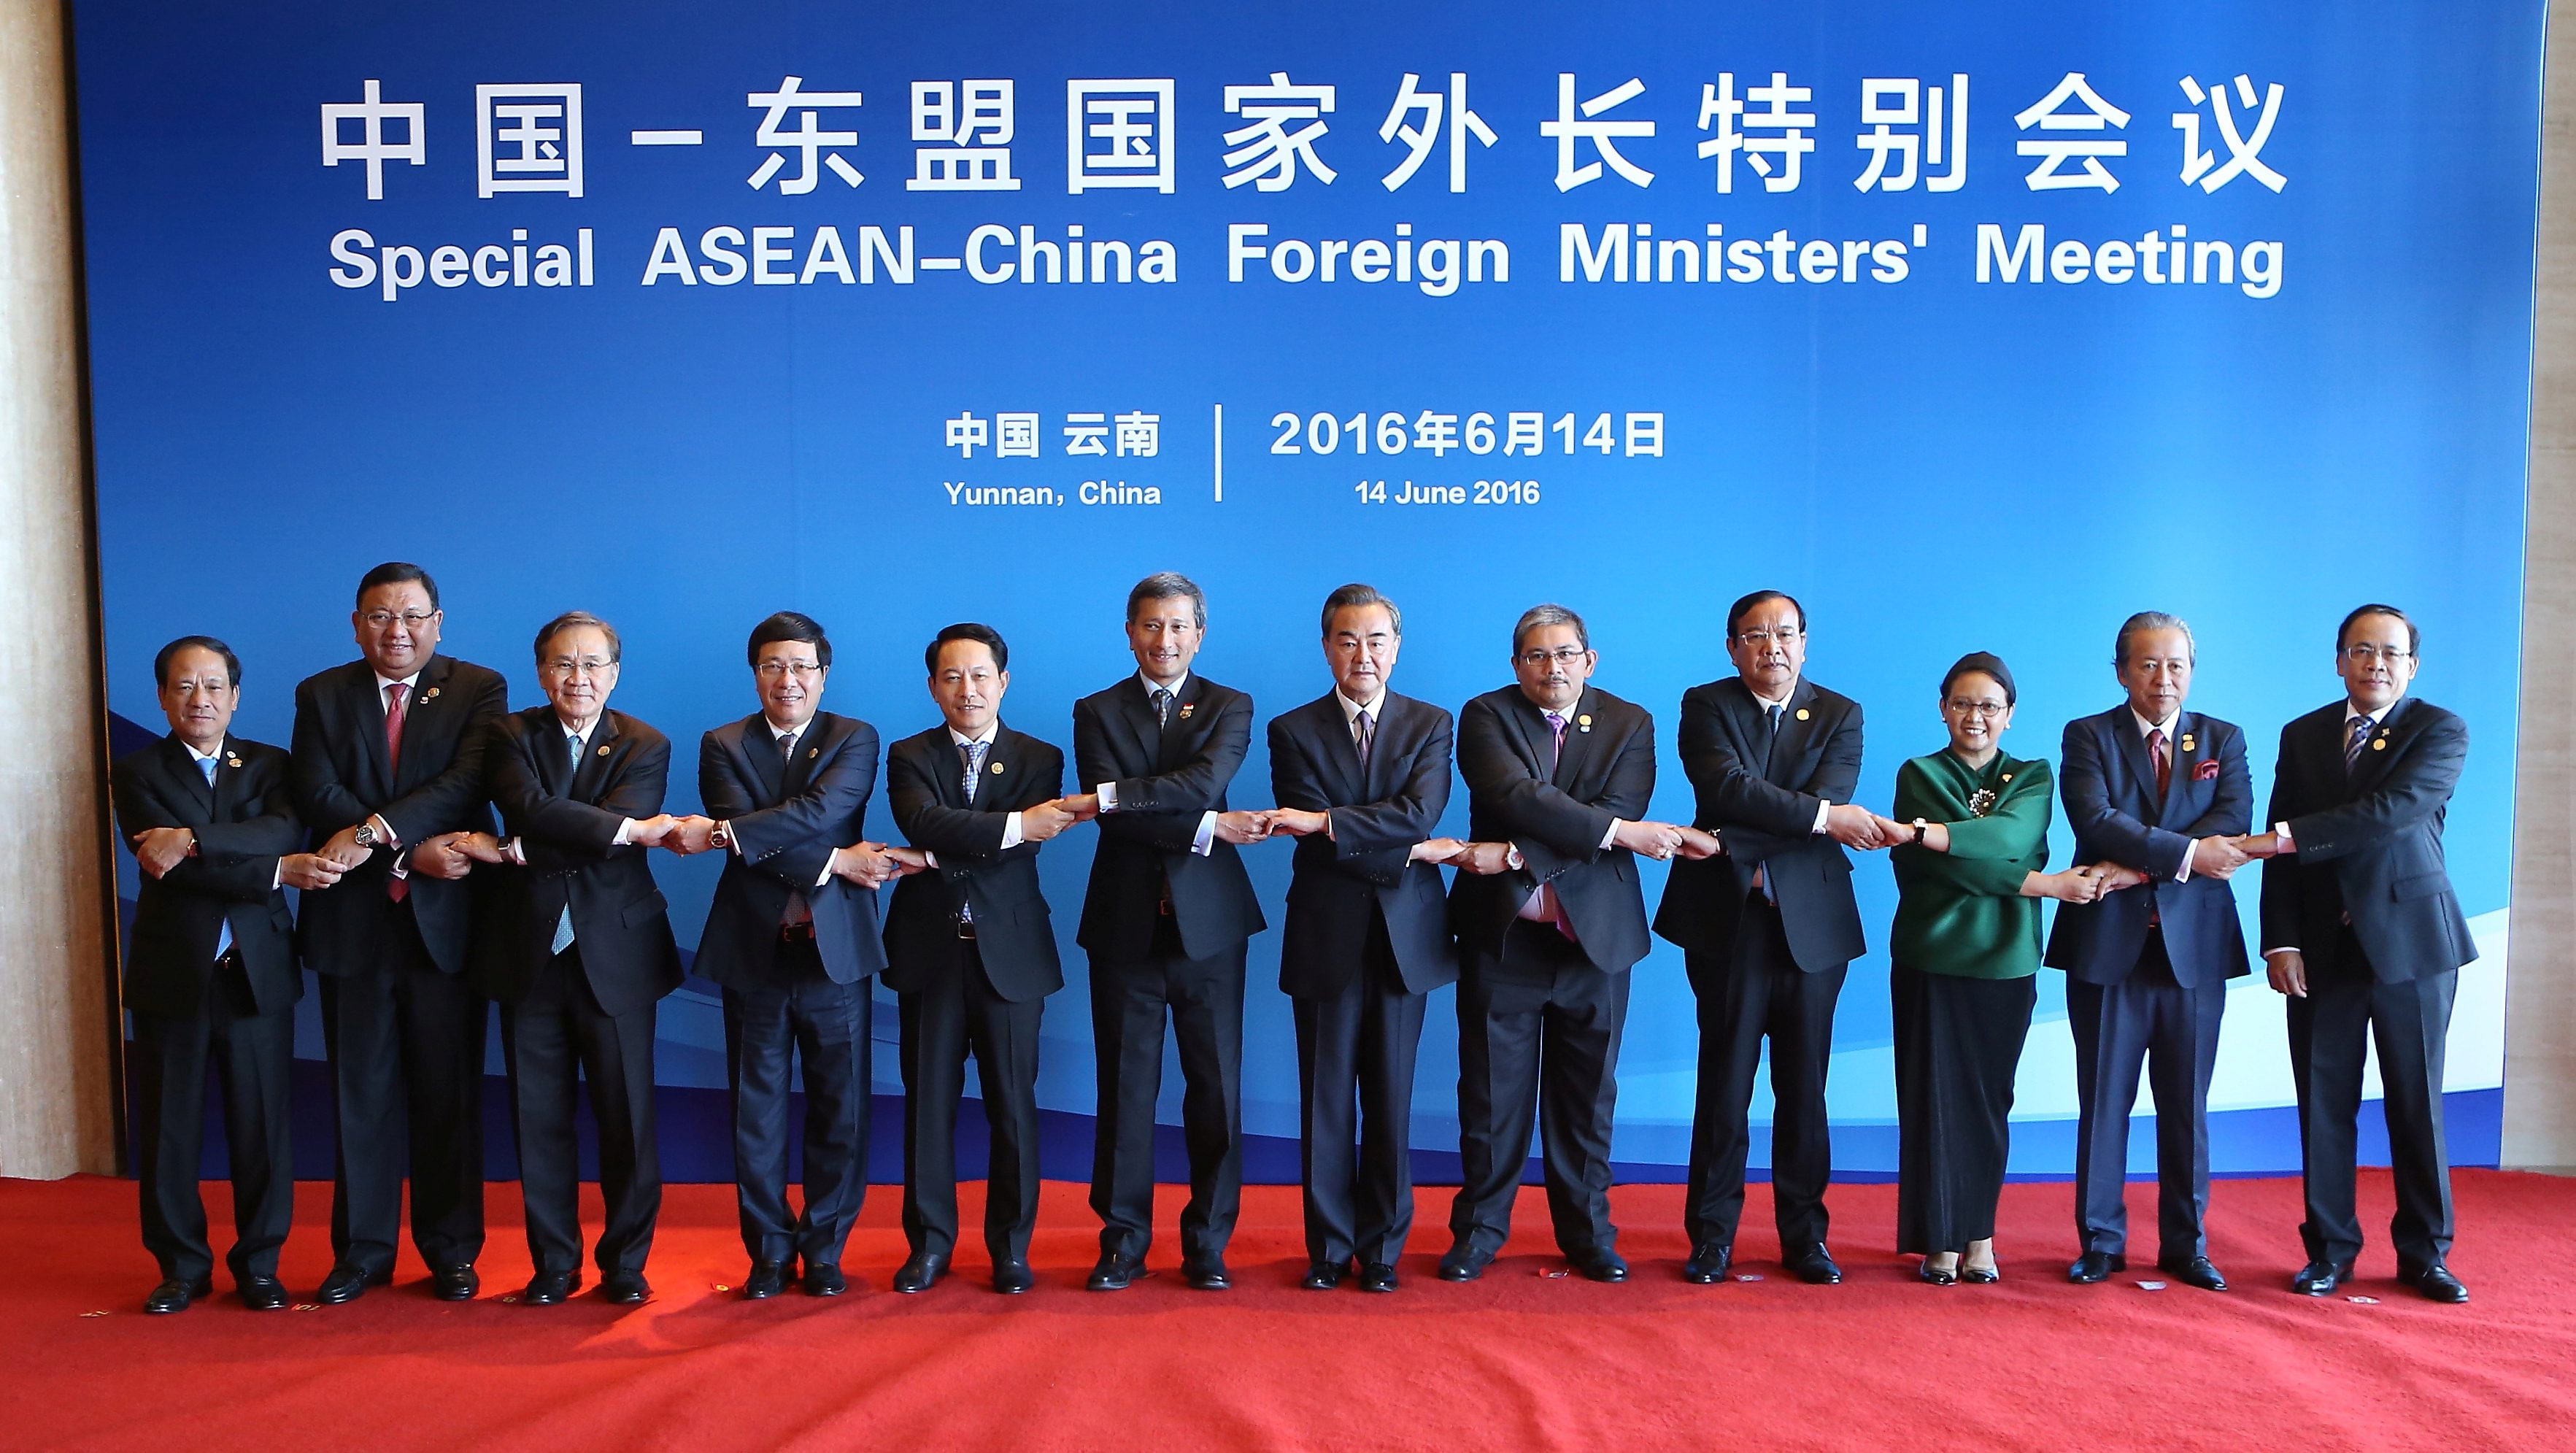 Officials pose for pictures during the Special ASEAN-China Foreign Ministers' Meeting in Yuxi